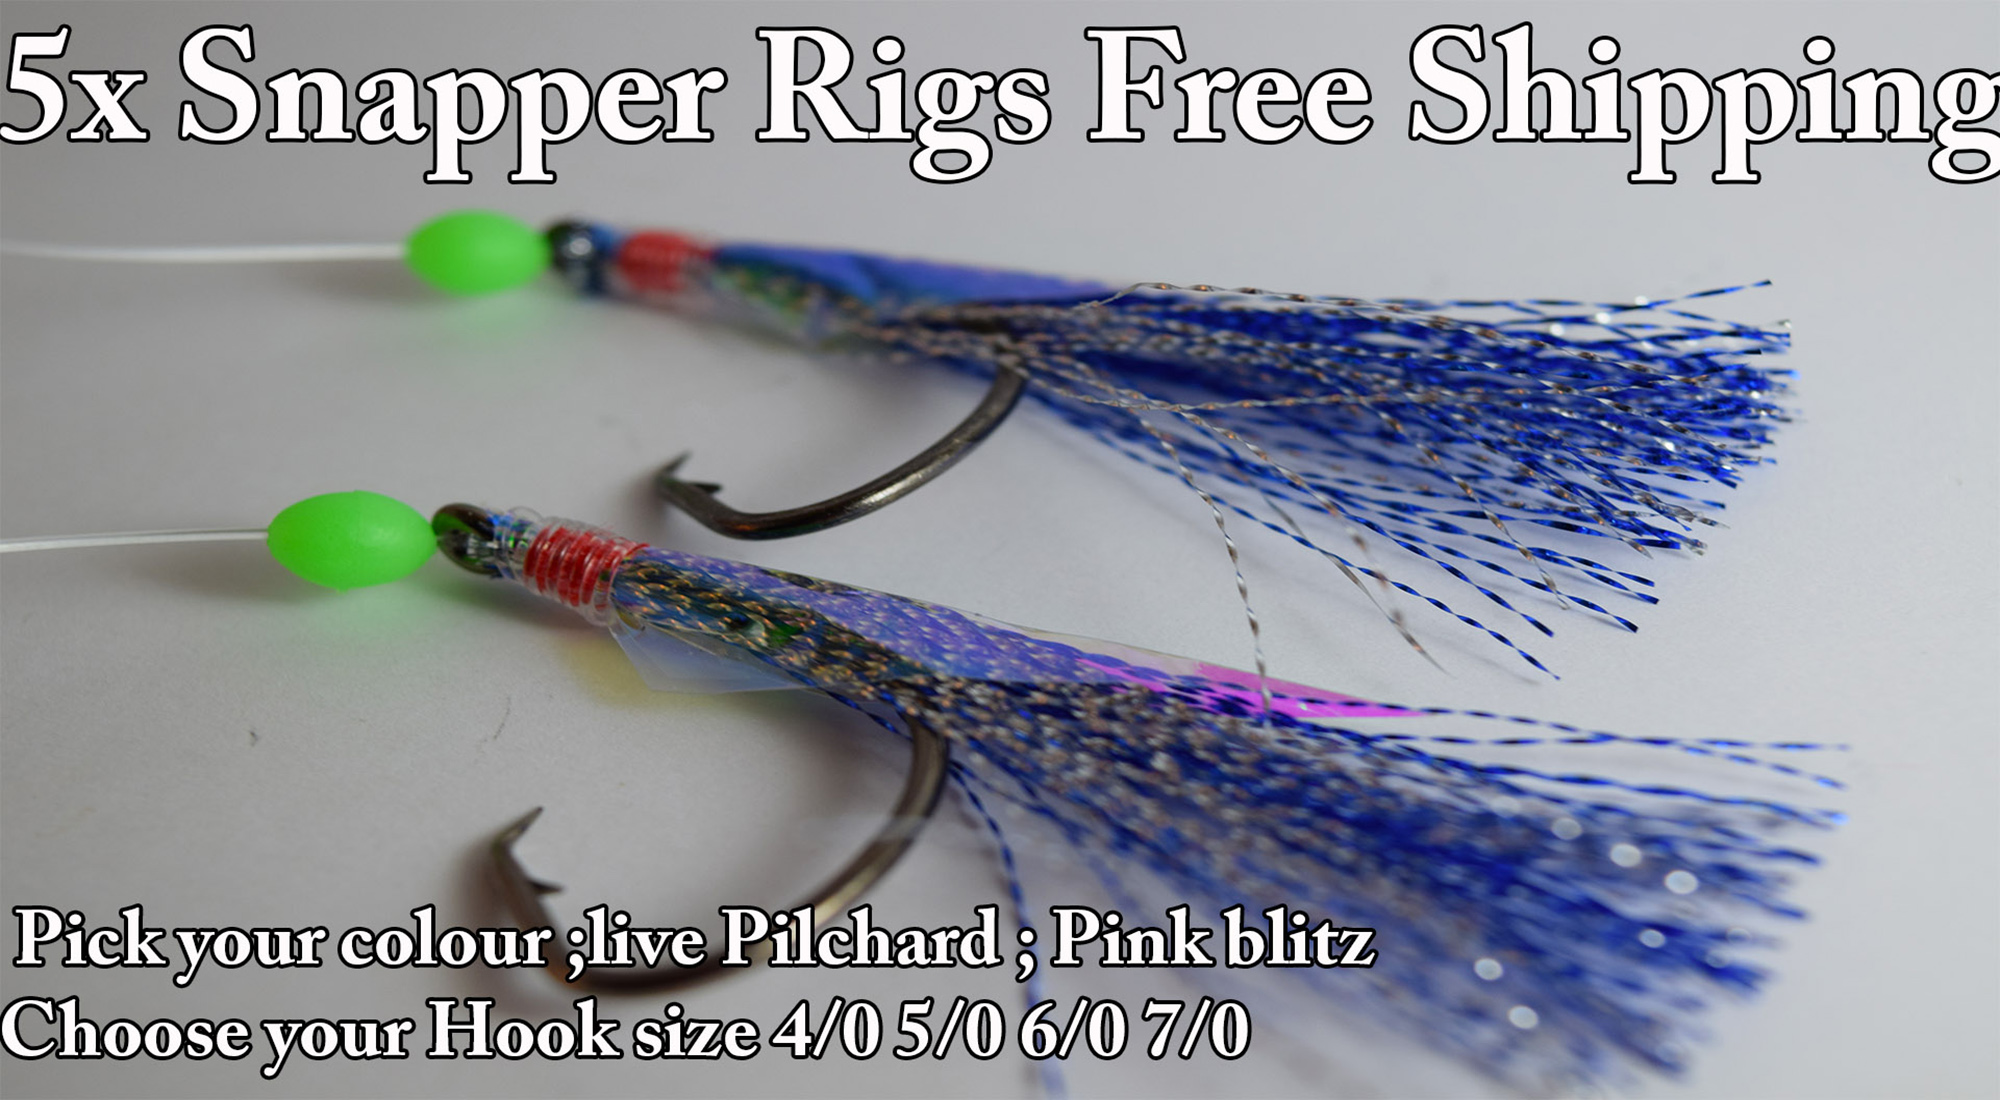 Fishing lures snapper jigs and bait rigs snapper fishing for Fishing knots for lures